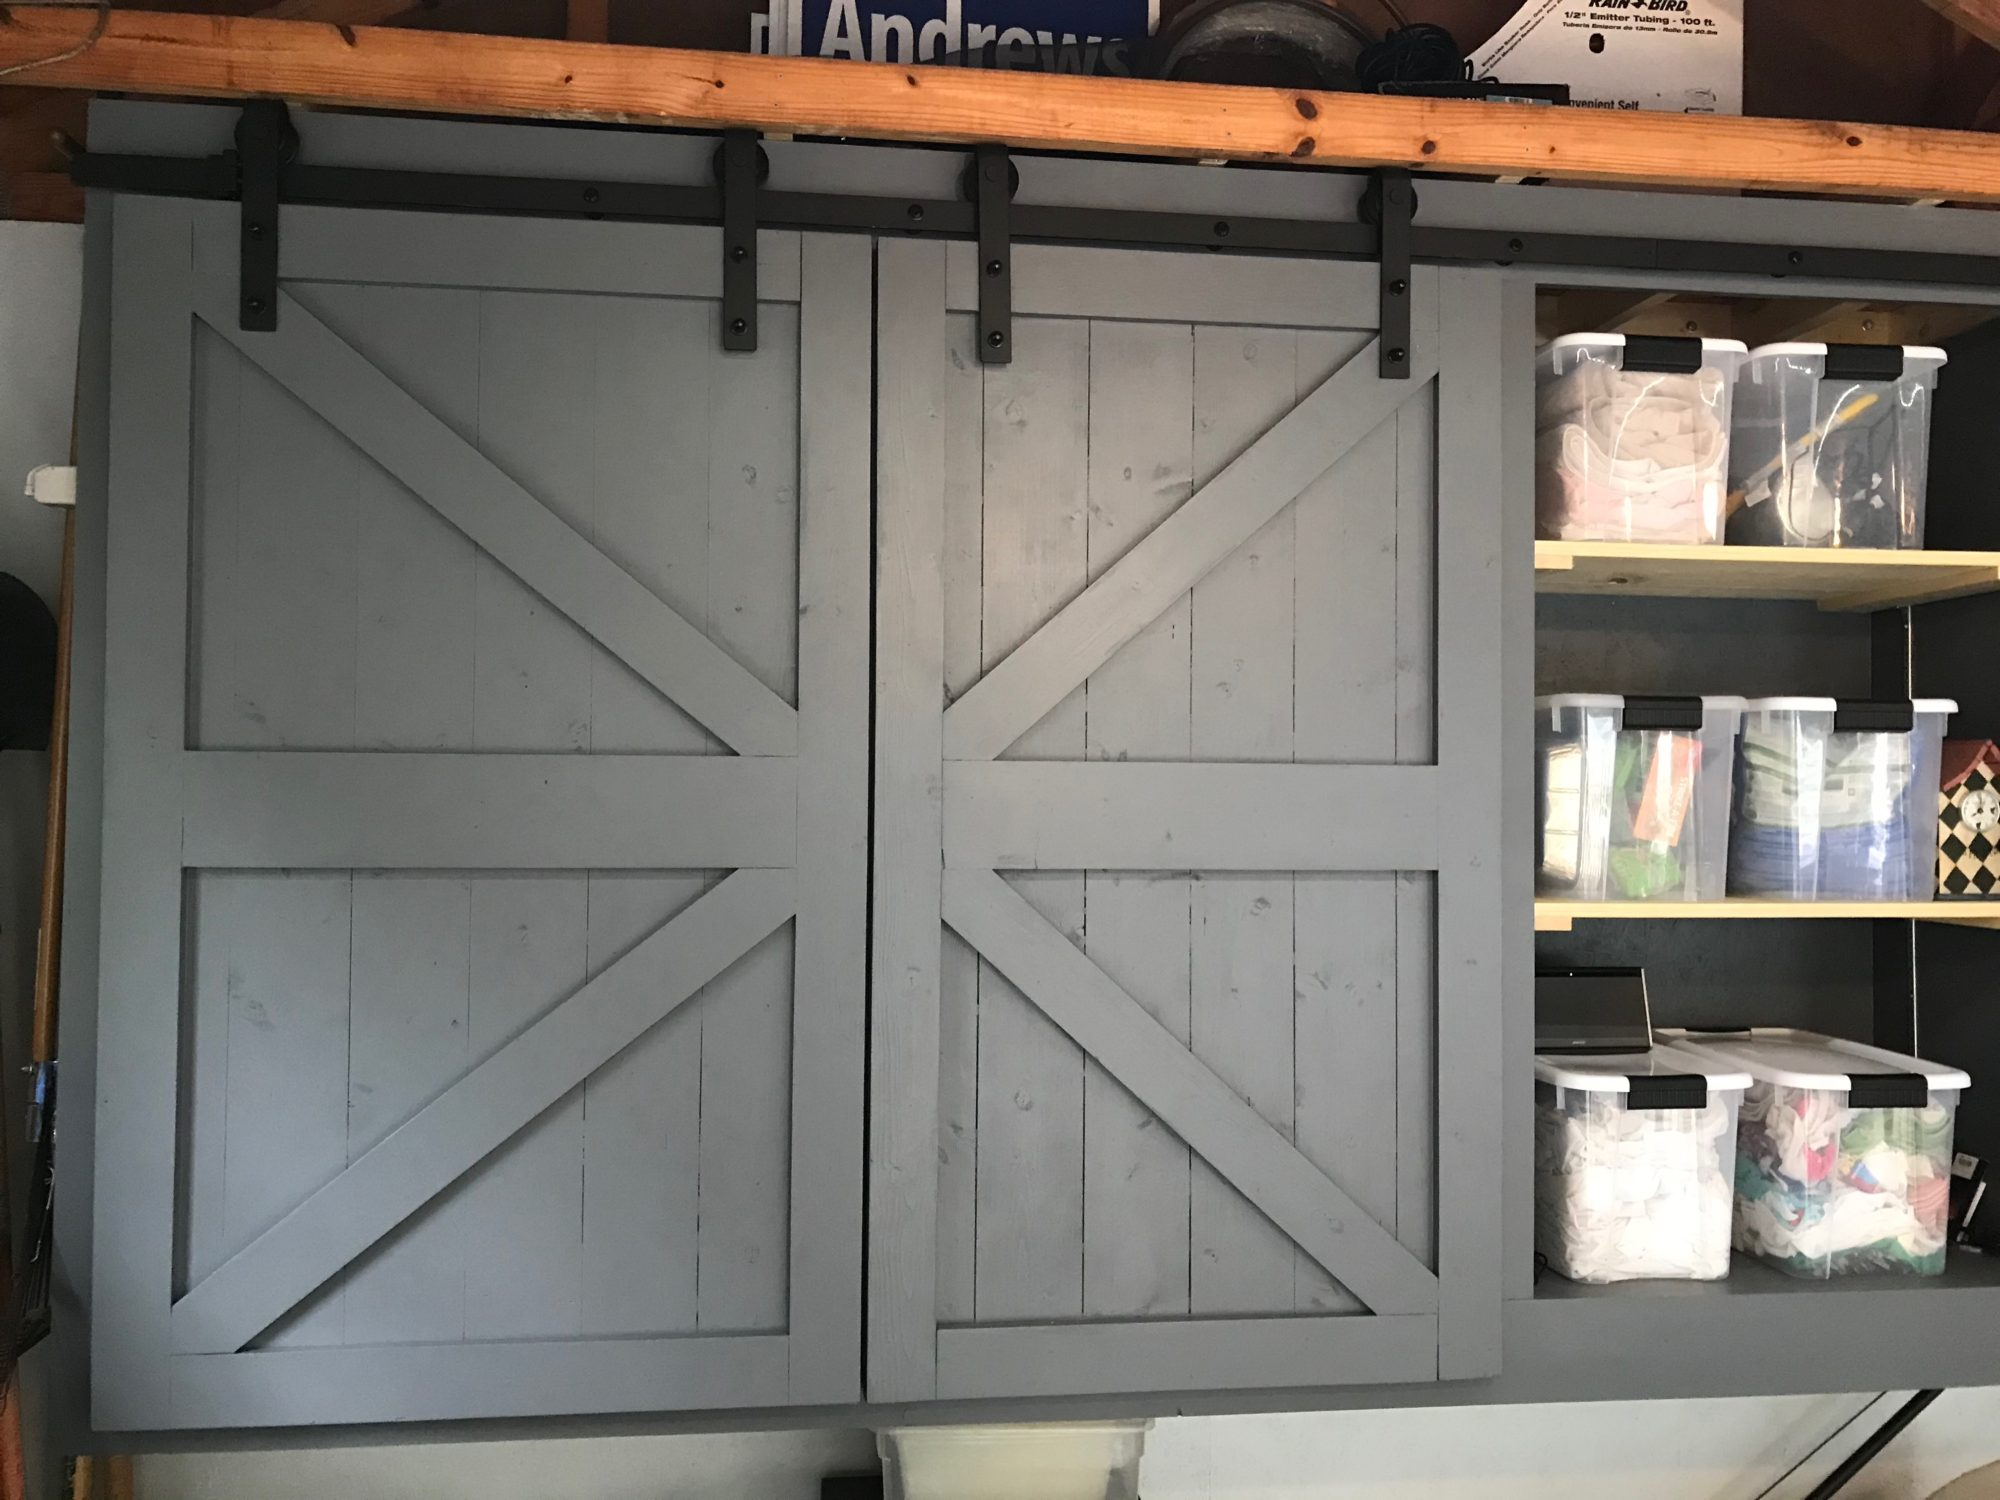 How To Build Modern Garage Storage Shelves Diy Everyday Man